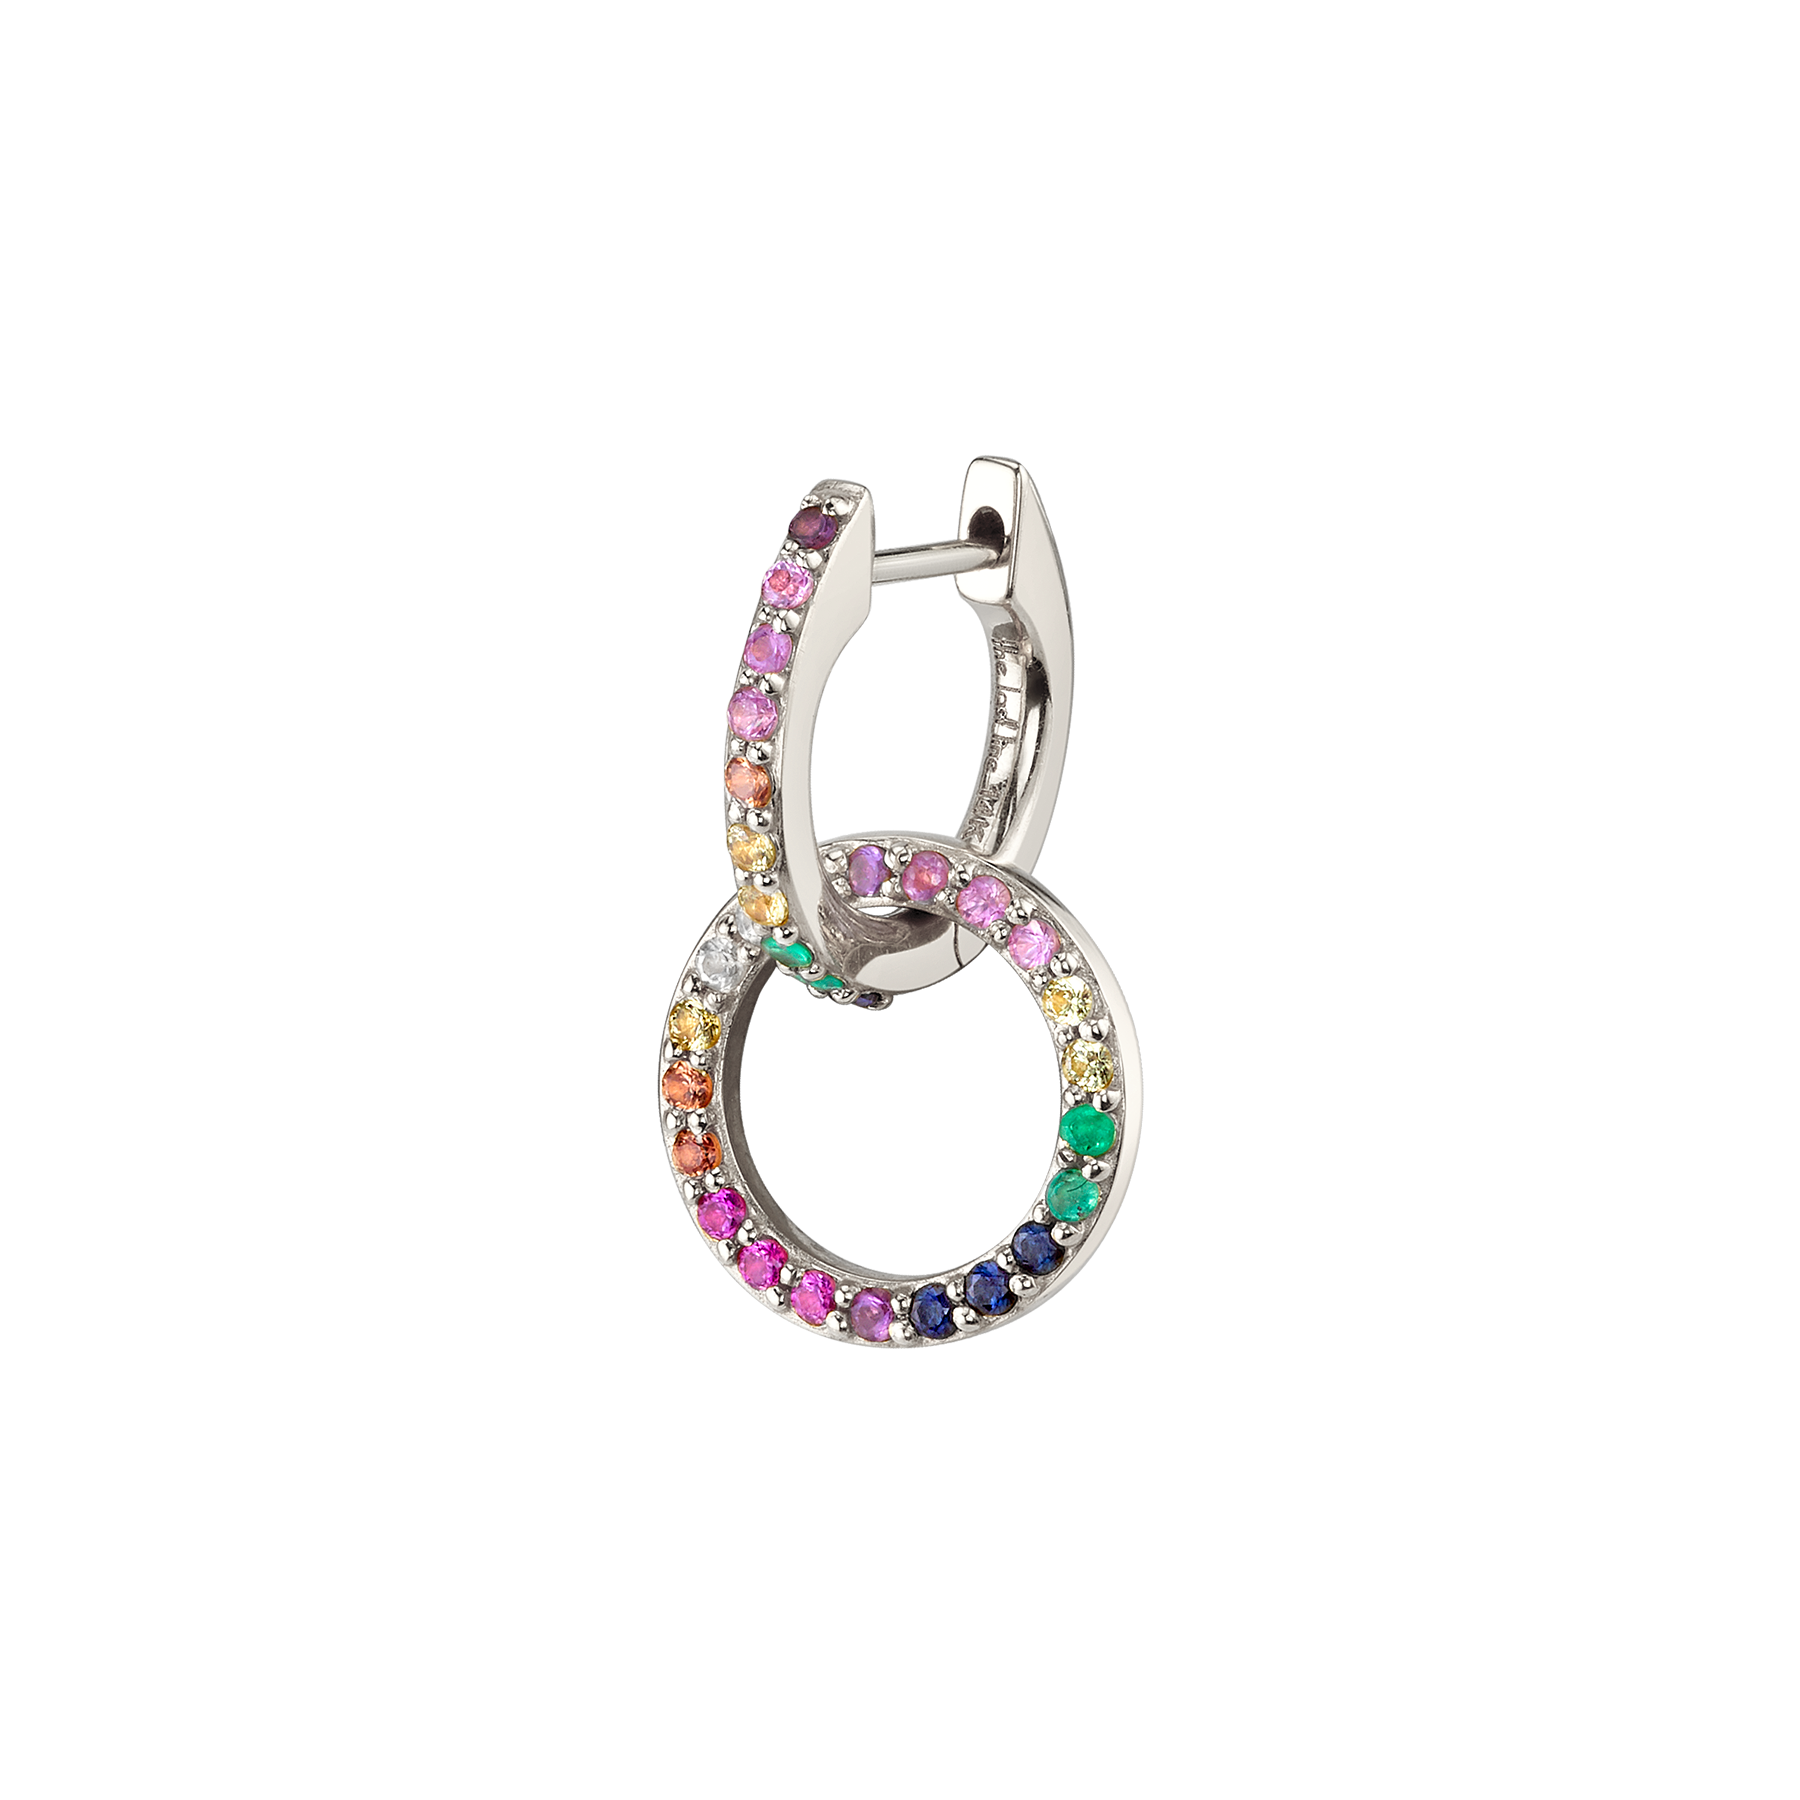 RAINBOW DOUBLE HOOP EARRING